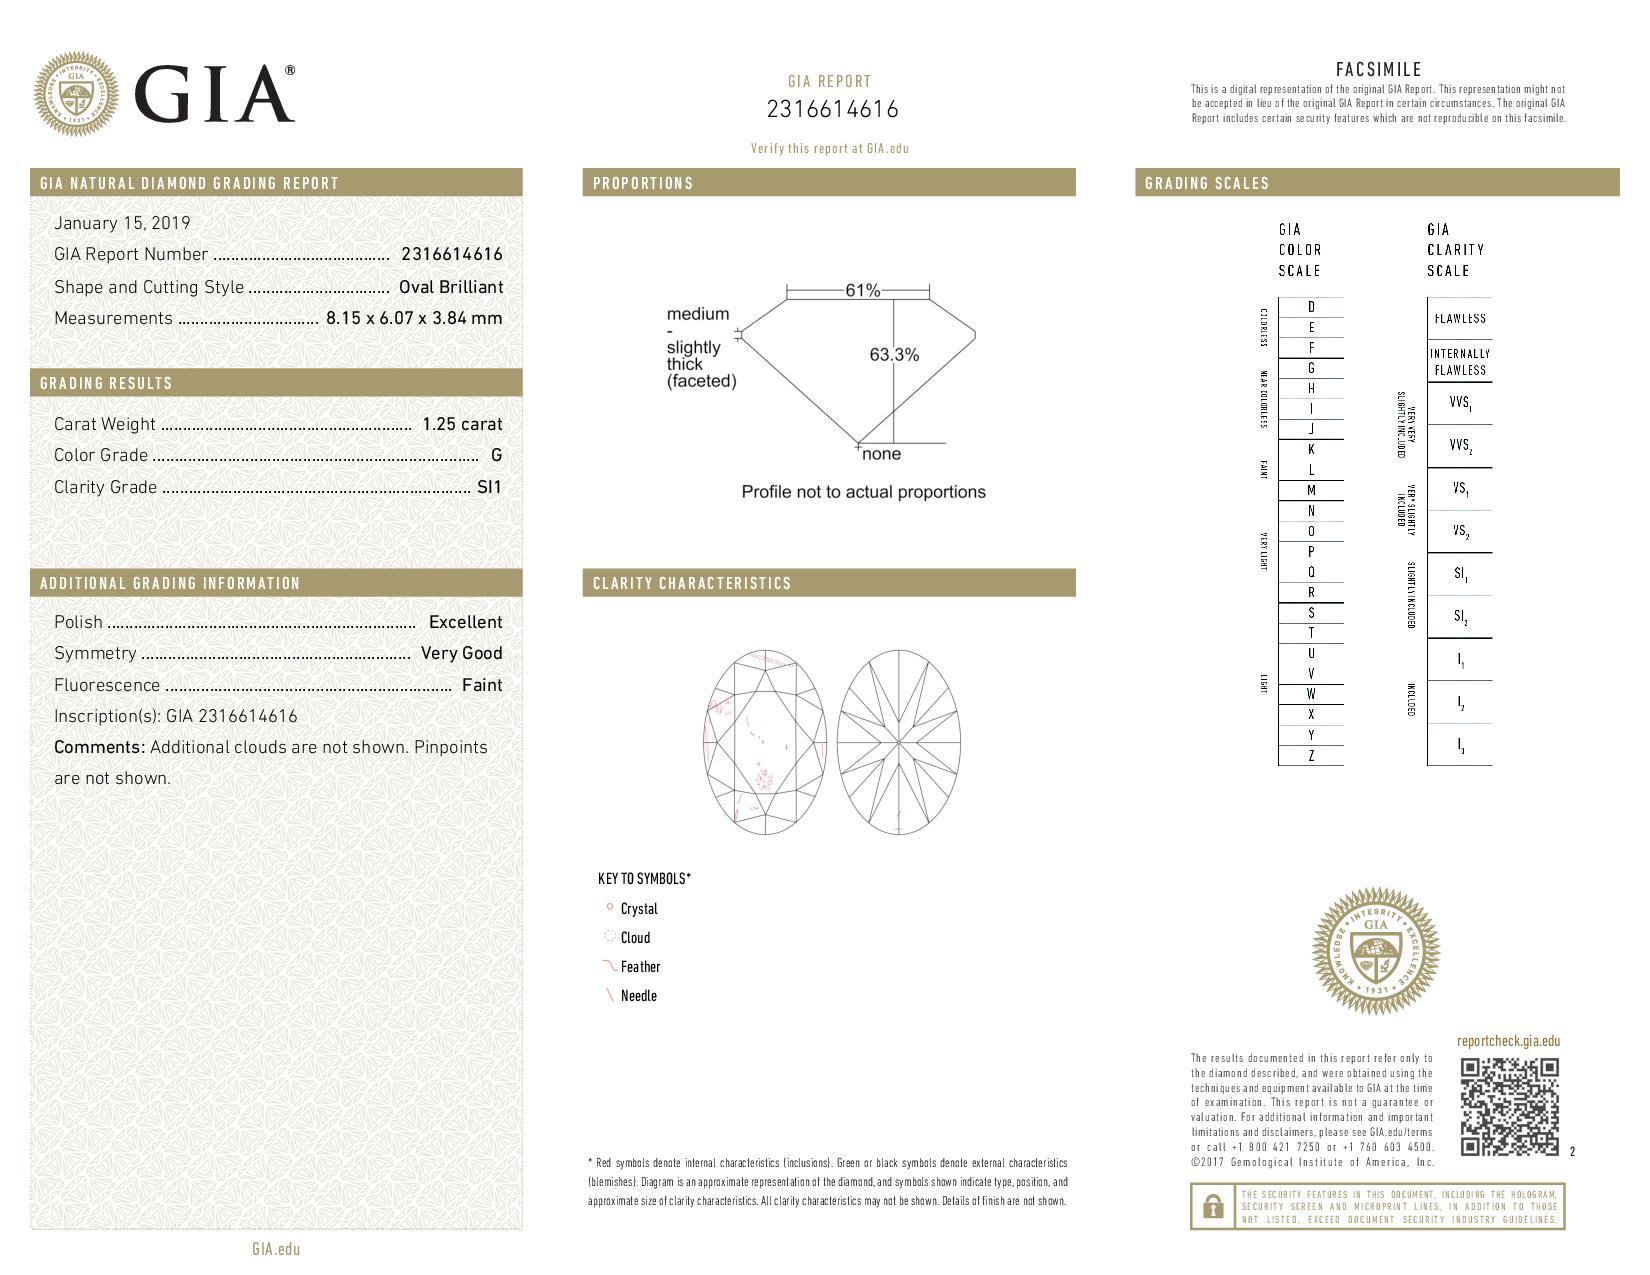 This is a 1.25 carat oval shape, G color, SI1 clarity natural diamond accompanied by a GIA grading report.